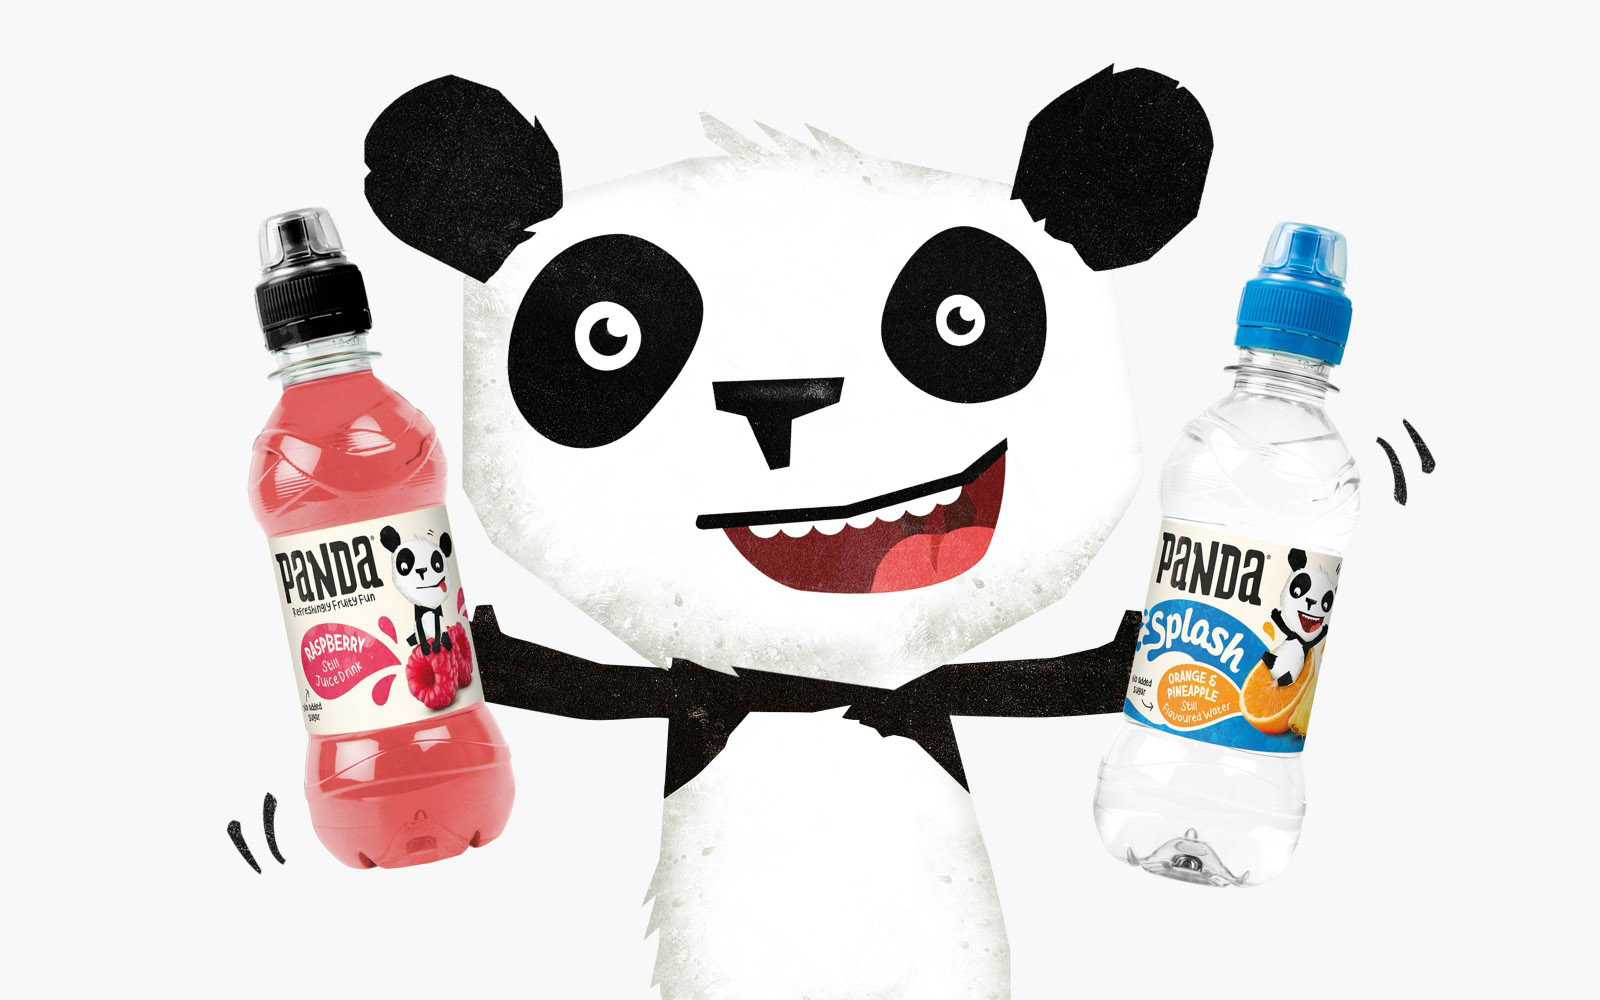 Panda-Web-Pages-3200-x-2000-Melvin_No_Copy-1600x1000